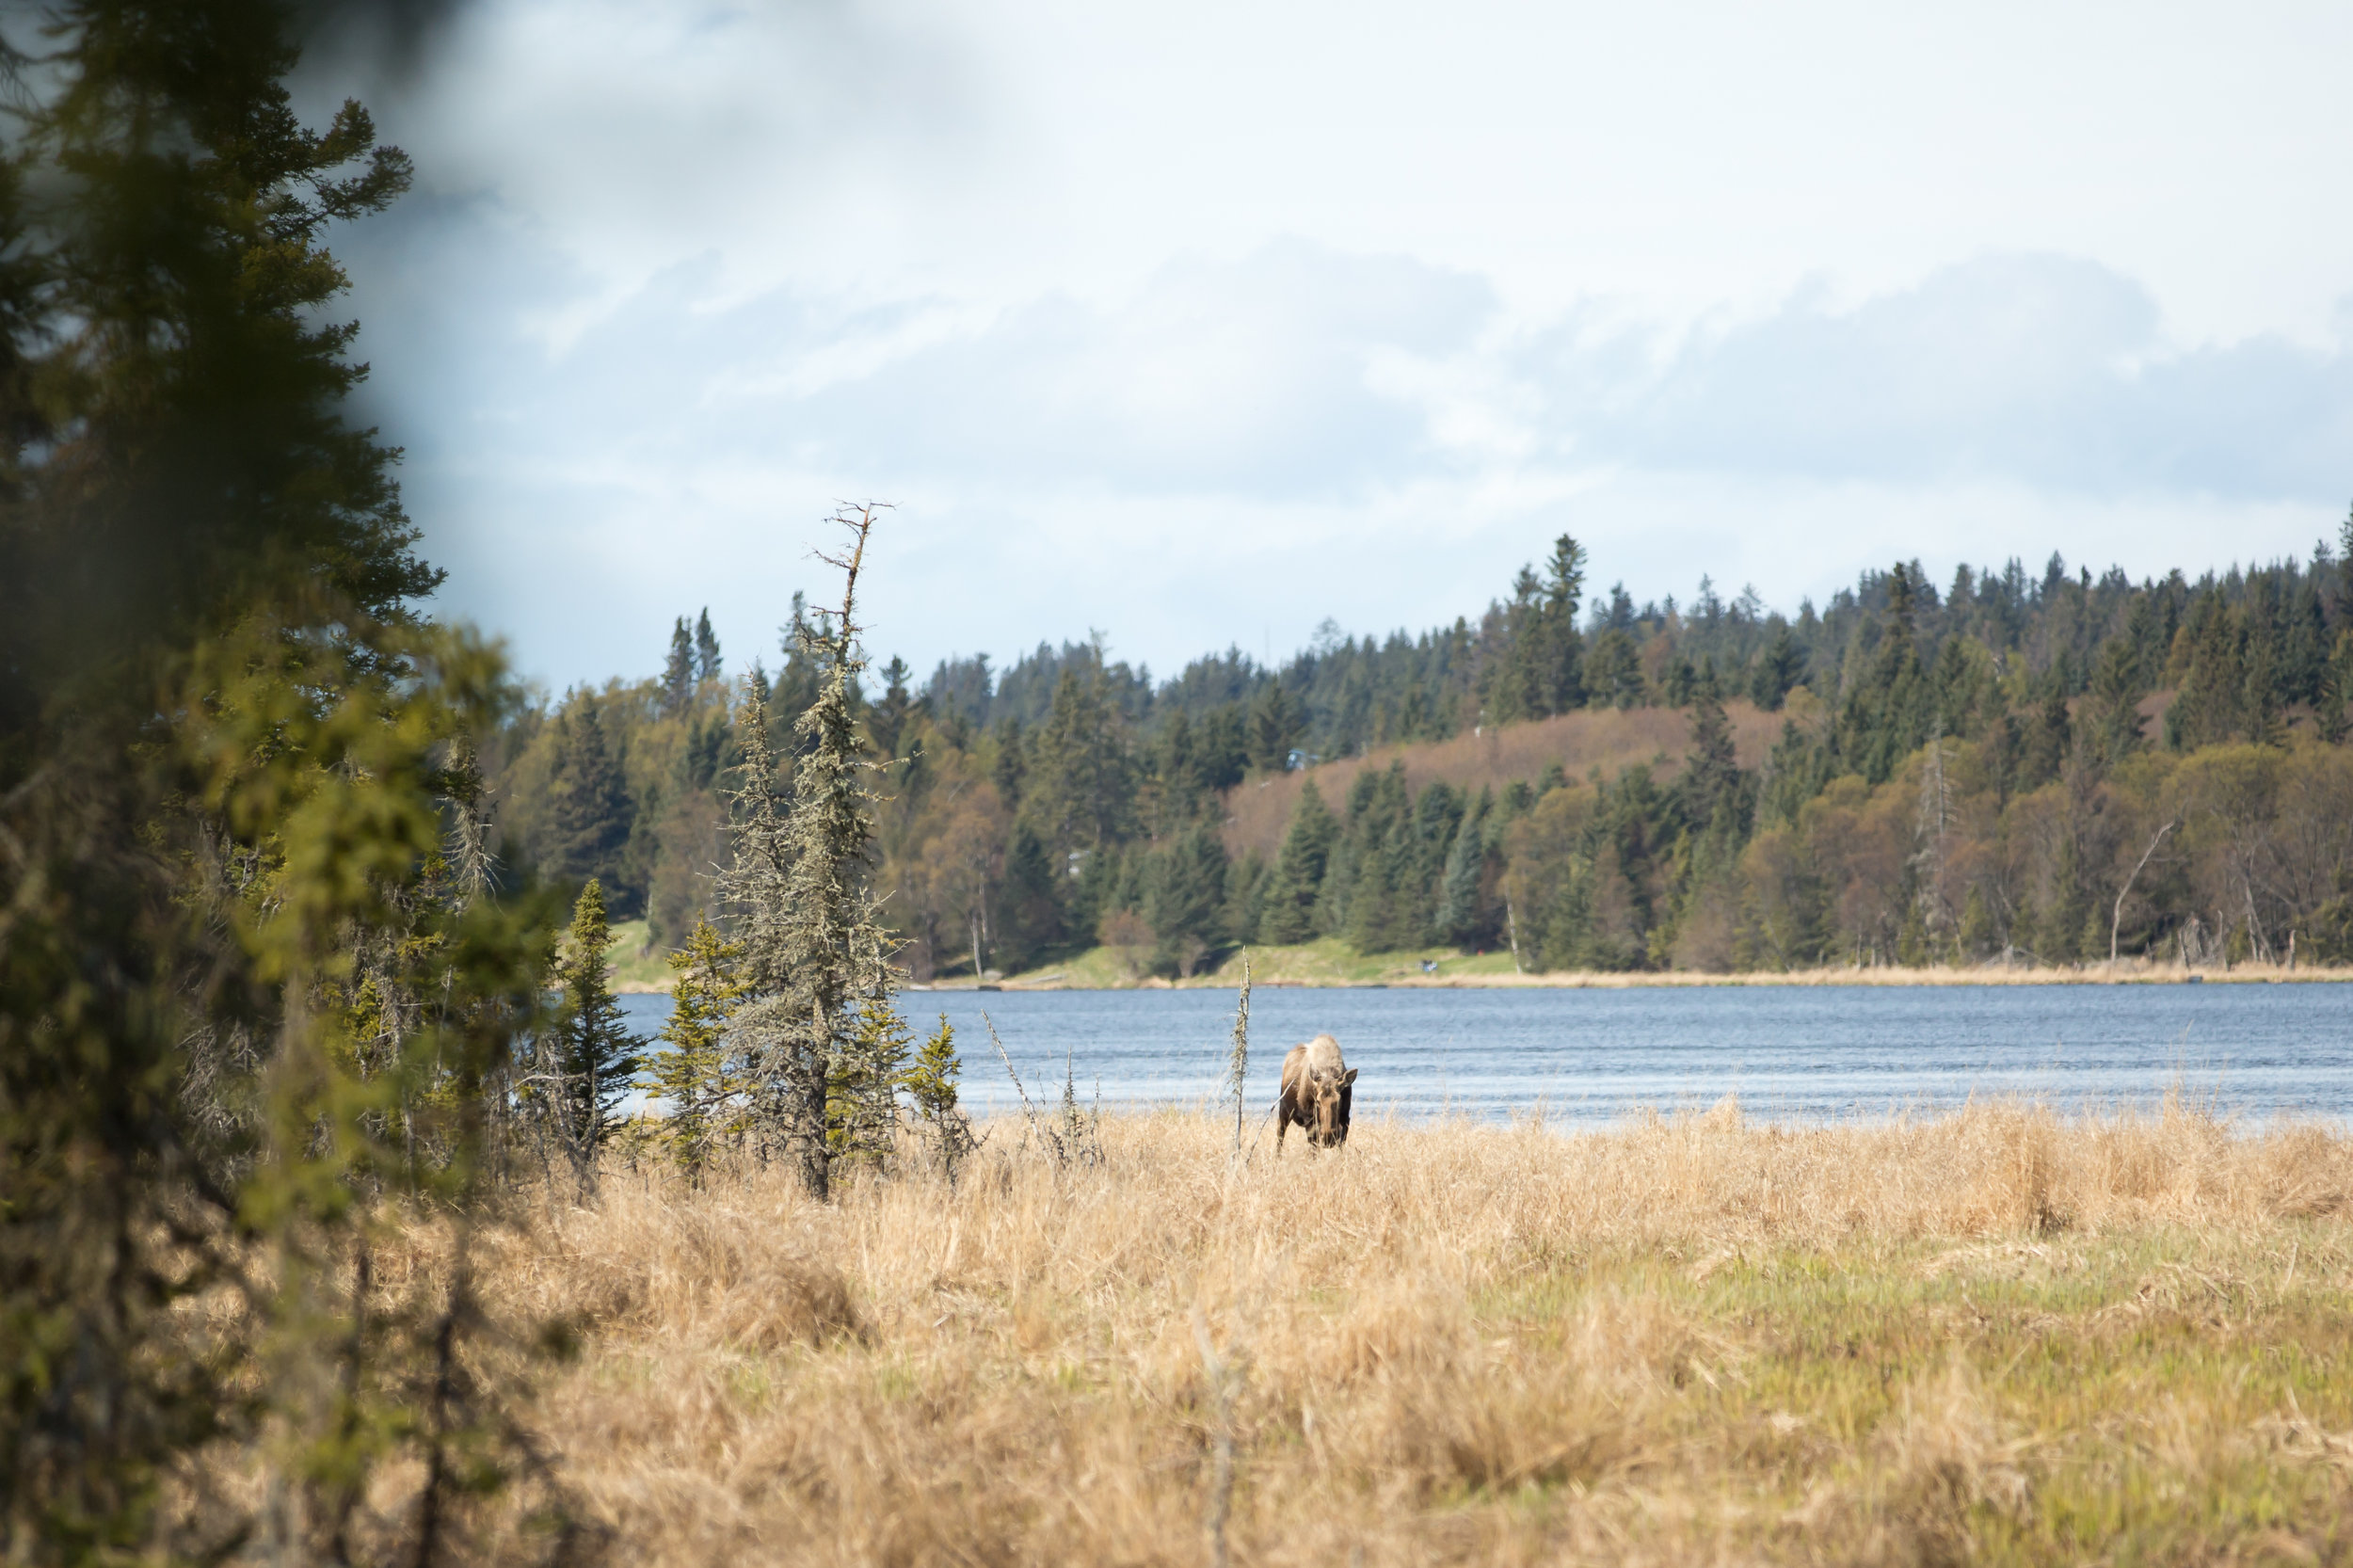 Moose sighting at Beluga Lake Wetlands